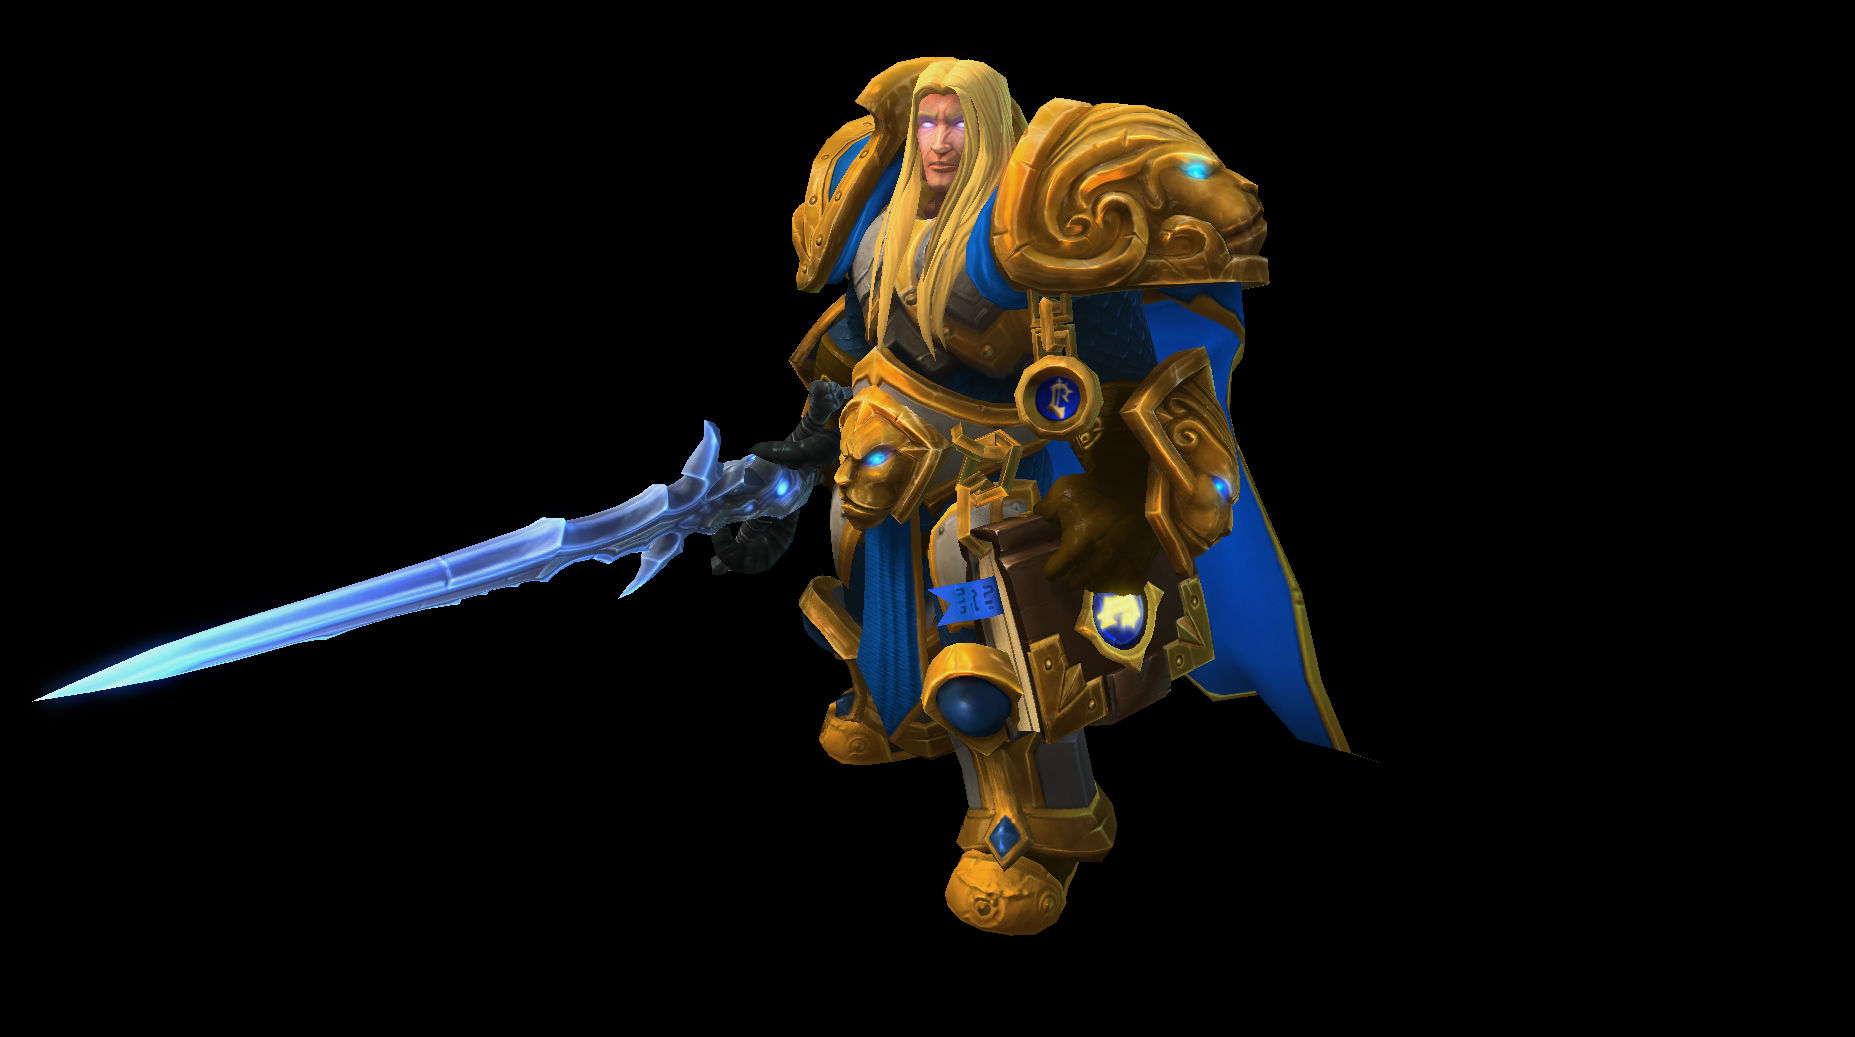 Heroes Of The Storm Hero And Skin List That We Know So Far